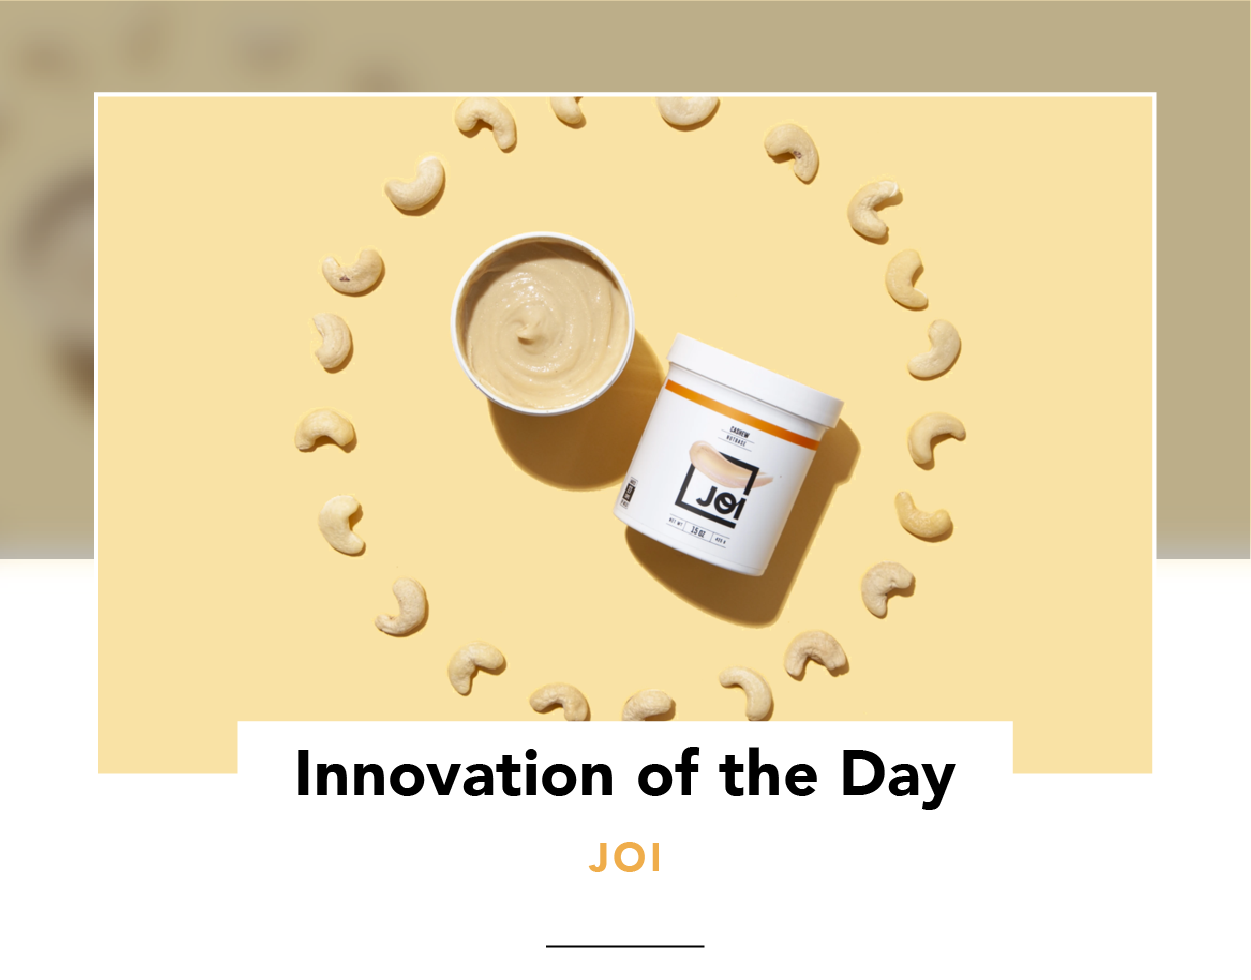 Two containers of JOI, one open and the other closed, surrounded by a circle of cashews